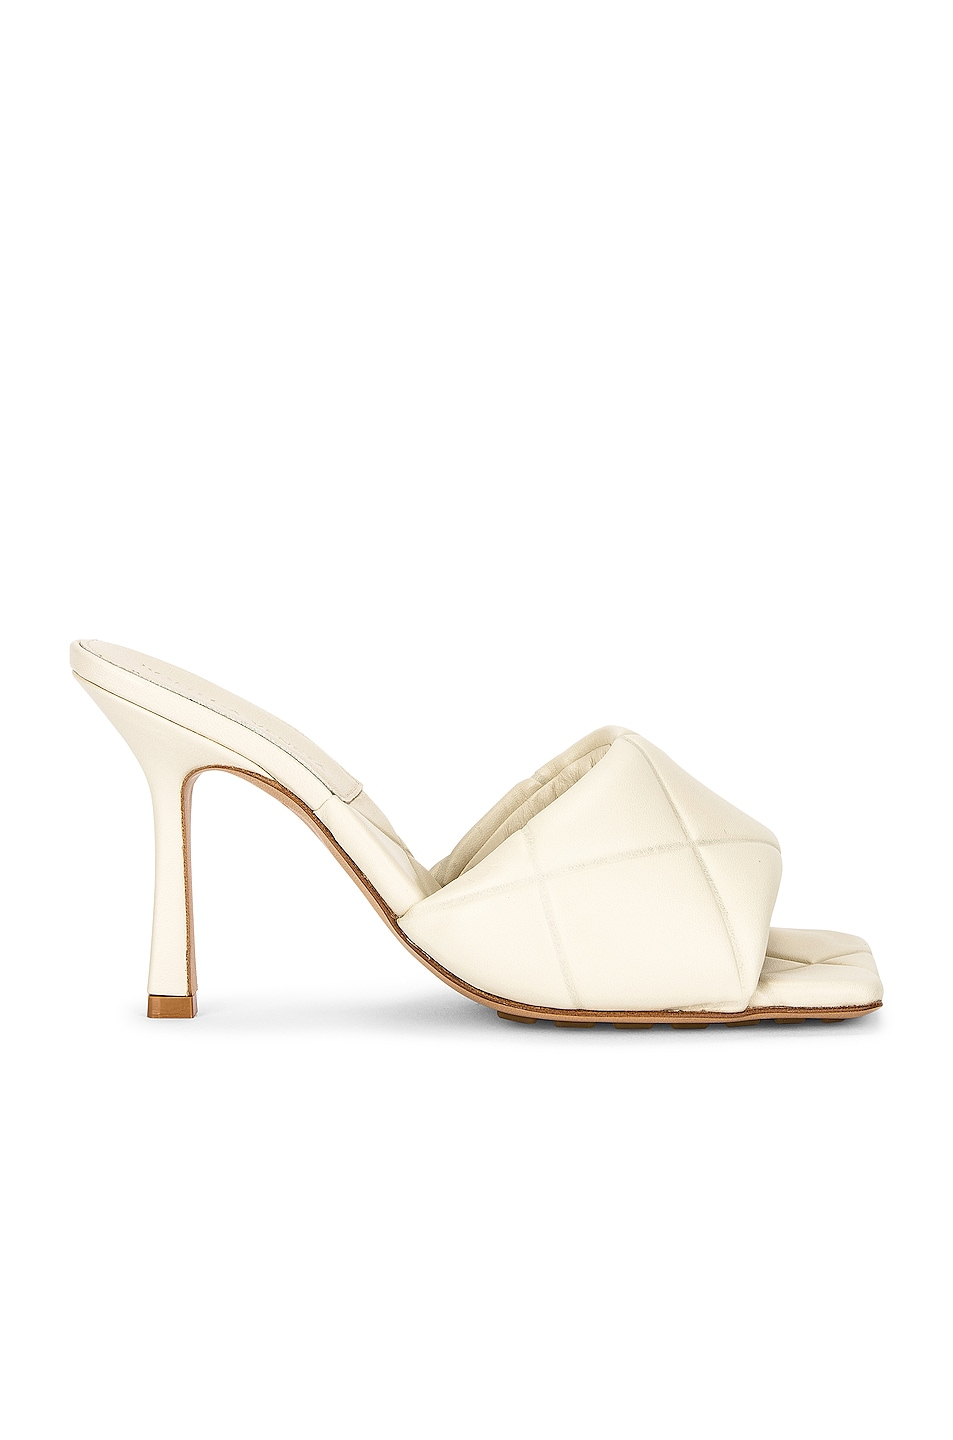 Image 1 of Bottega Veneta The Rubber Lido Sandals in Wax